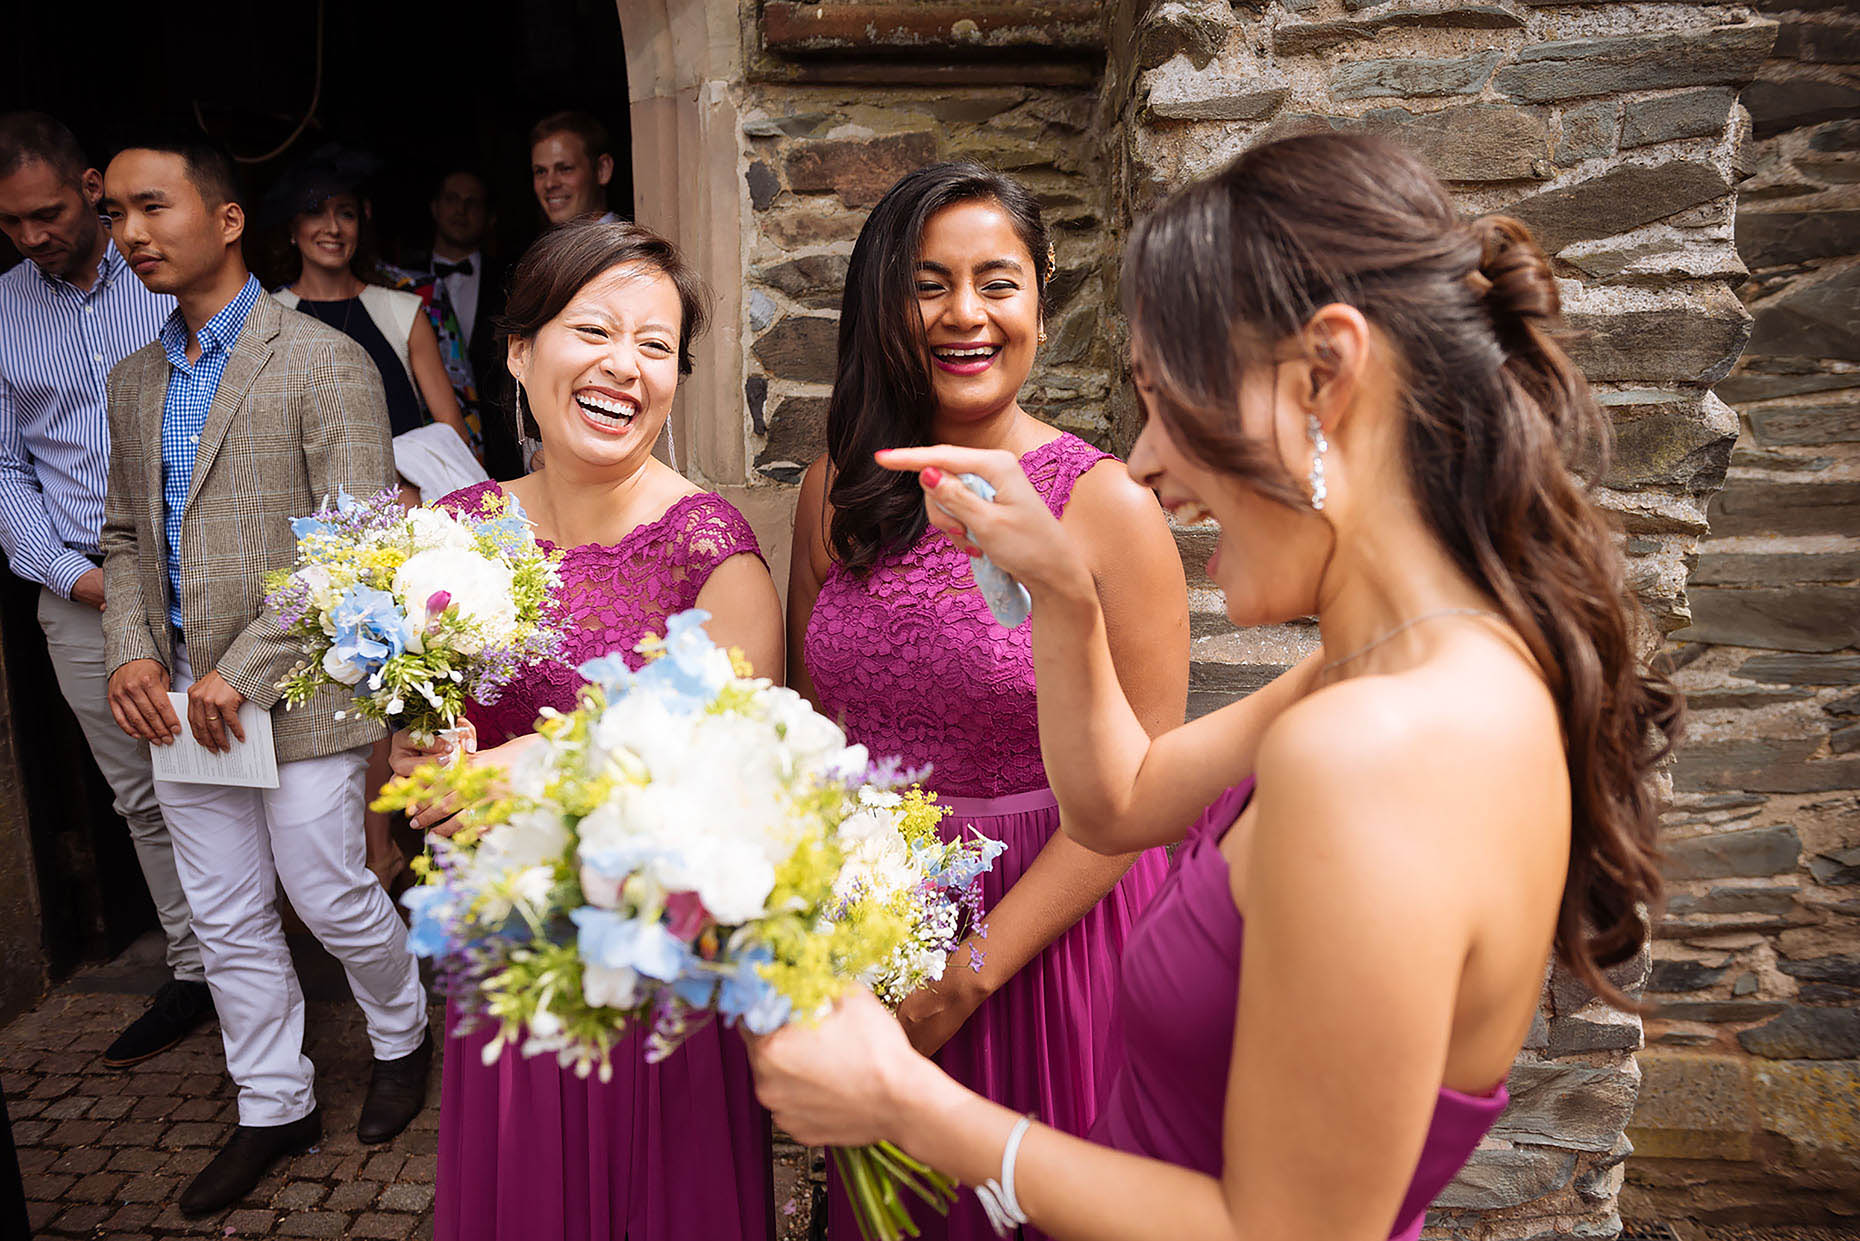 chay-felix-bridesmaids-leicestershire-wedding-photography-14